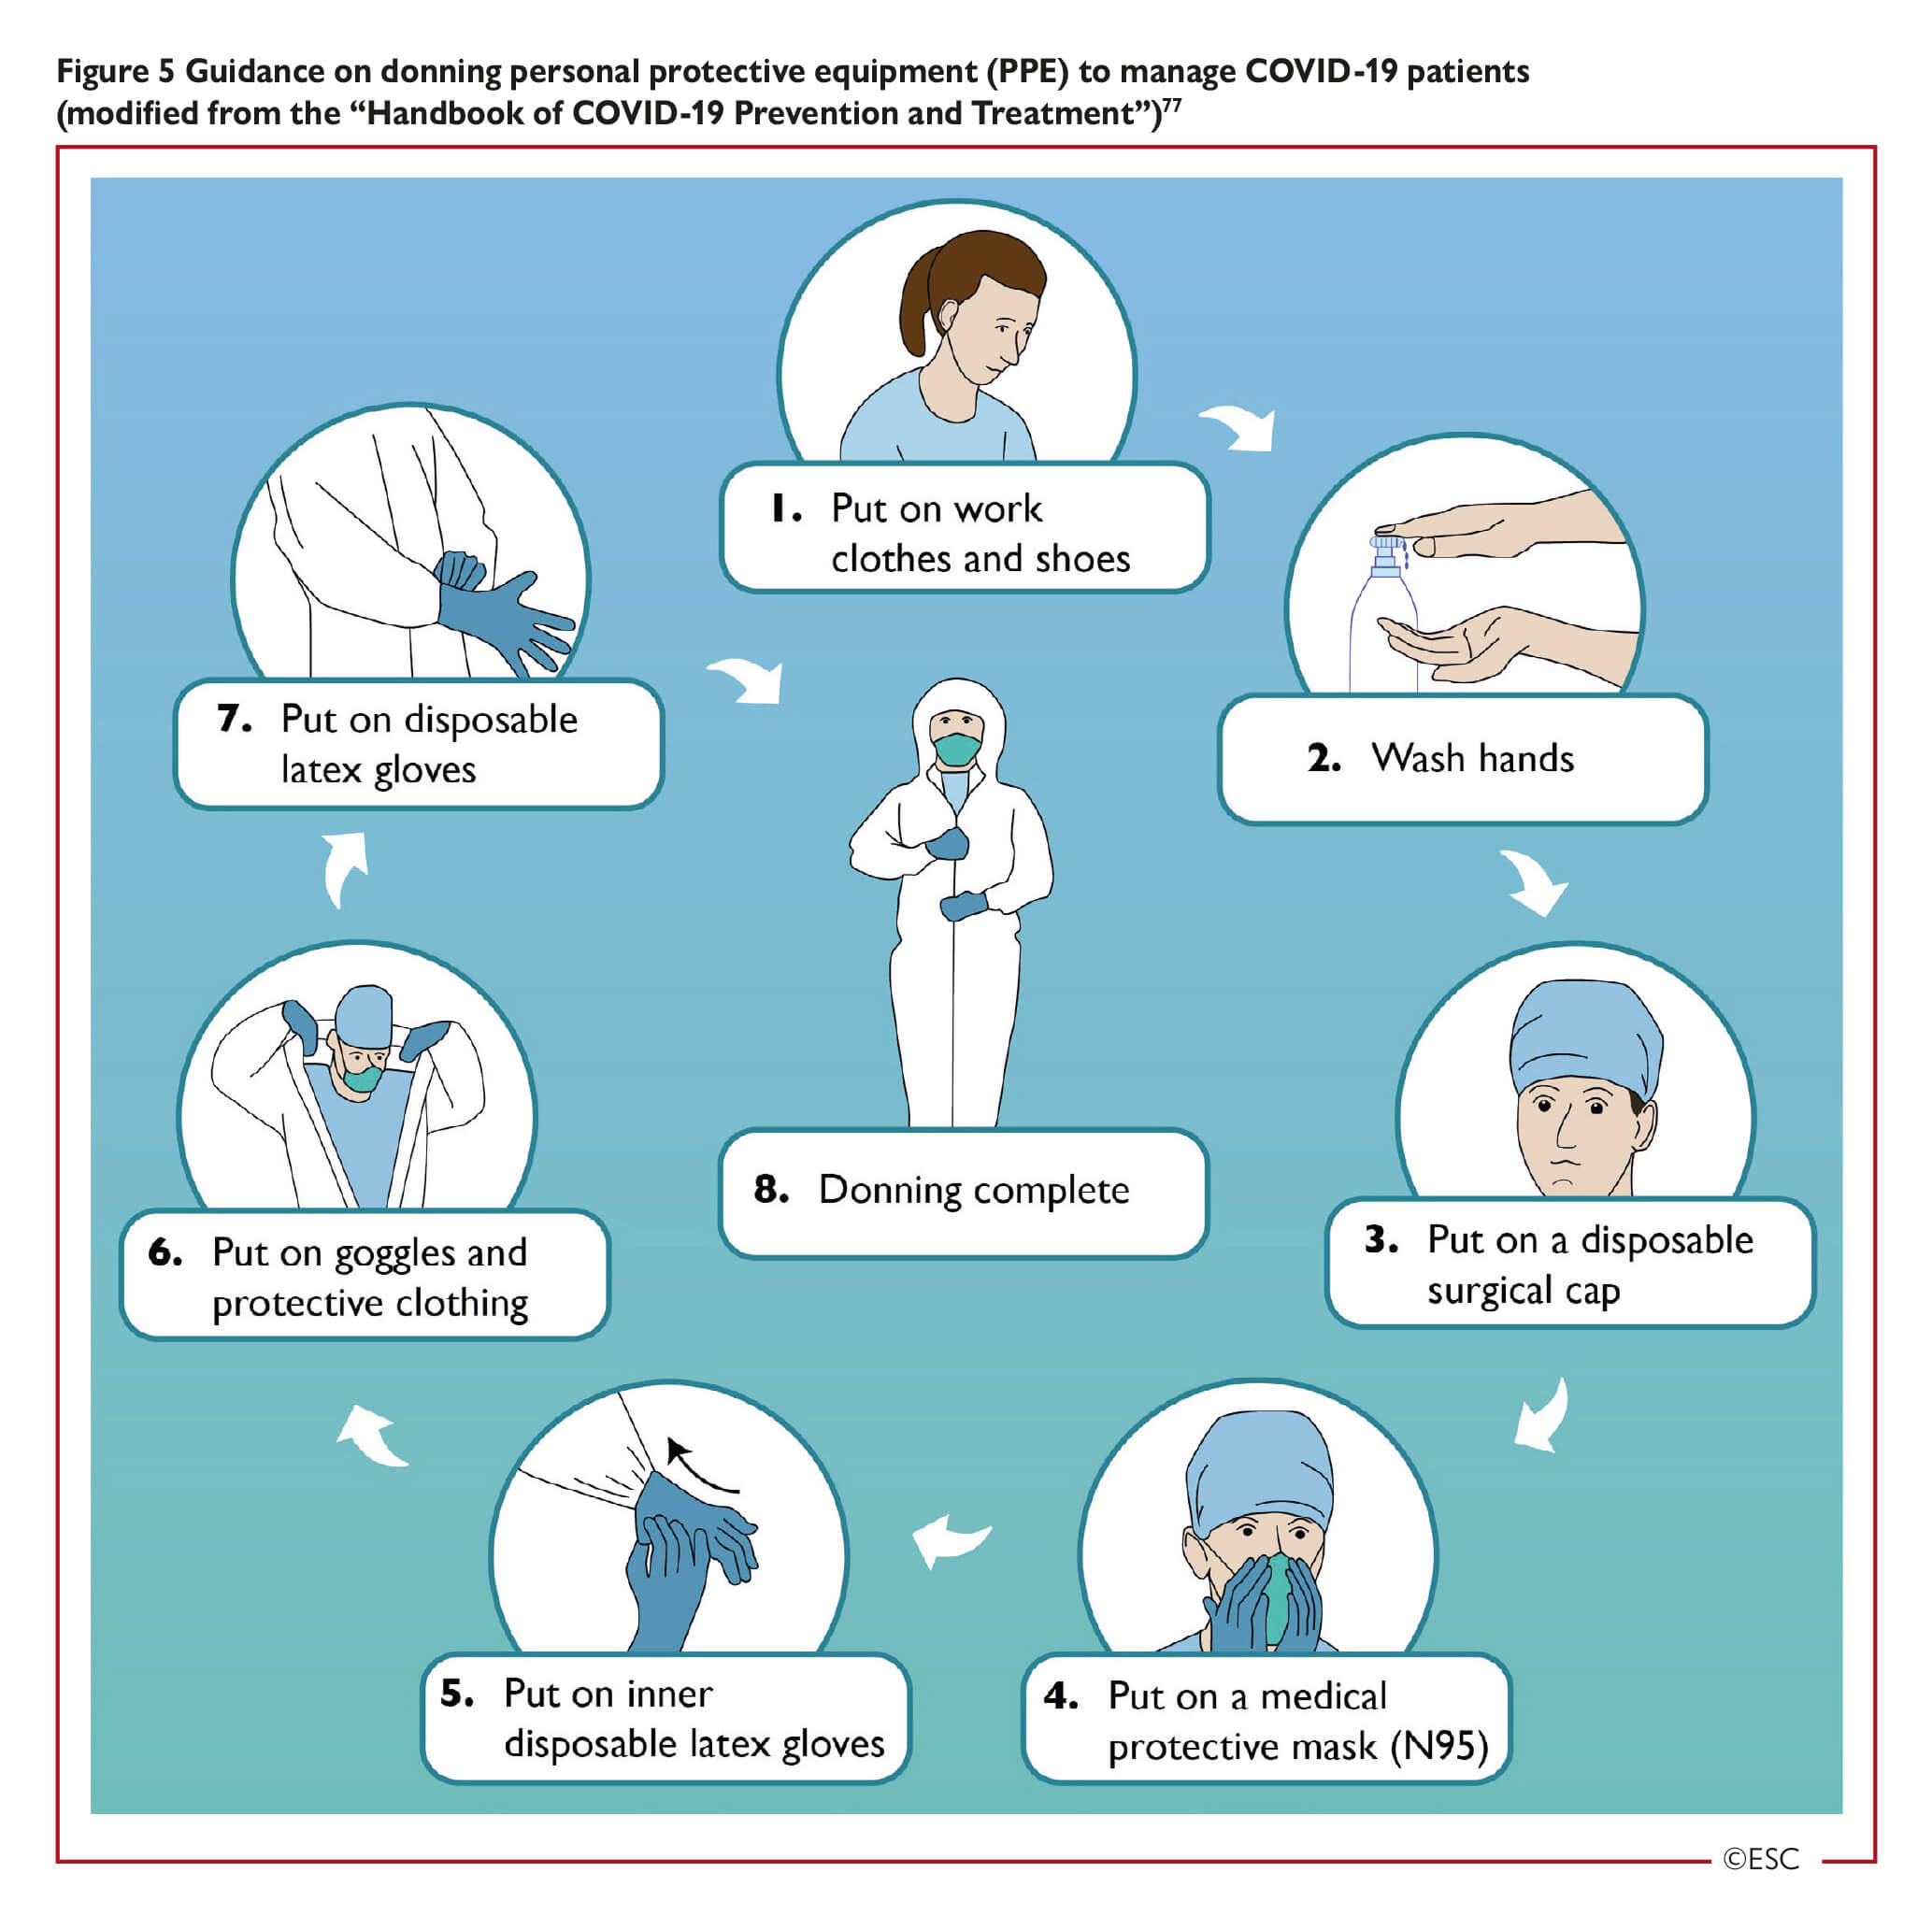 Esc Guidance For The Diagnosis And Management Of Cv Disease During The Covid 19 Pandemic A coronavirus is a common virus that causes an infection in your nose, sinuses, or upper throat. esc guidance for the diagnosis and